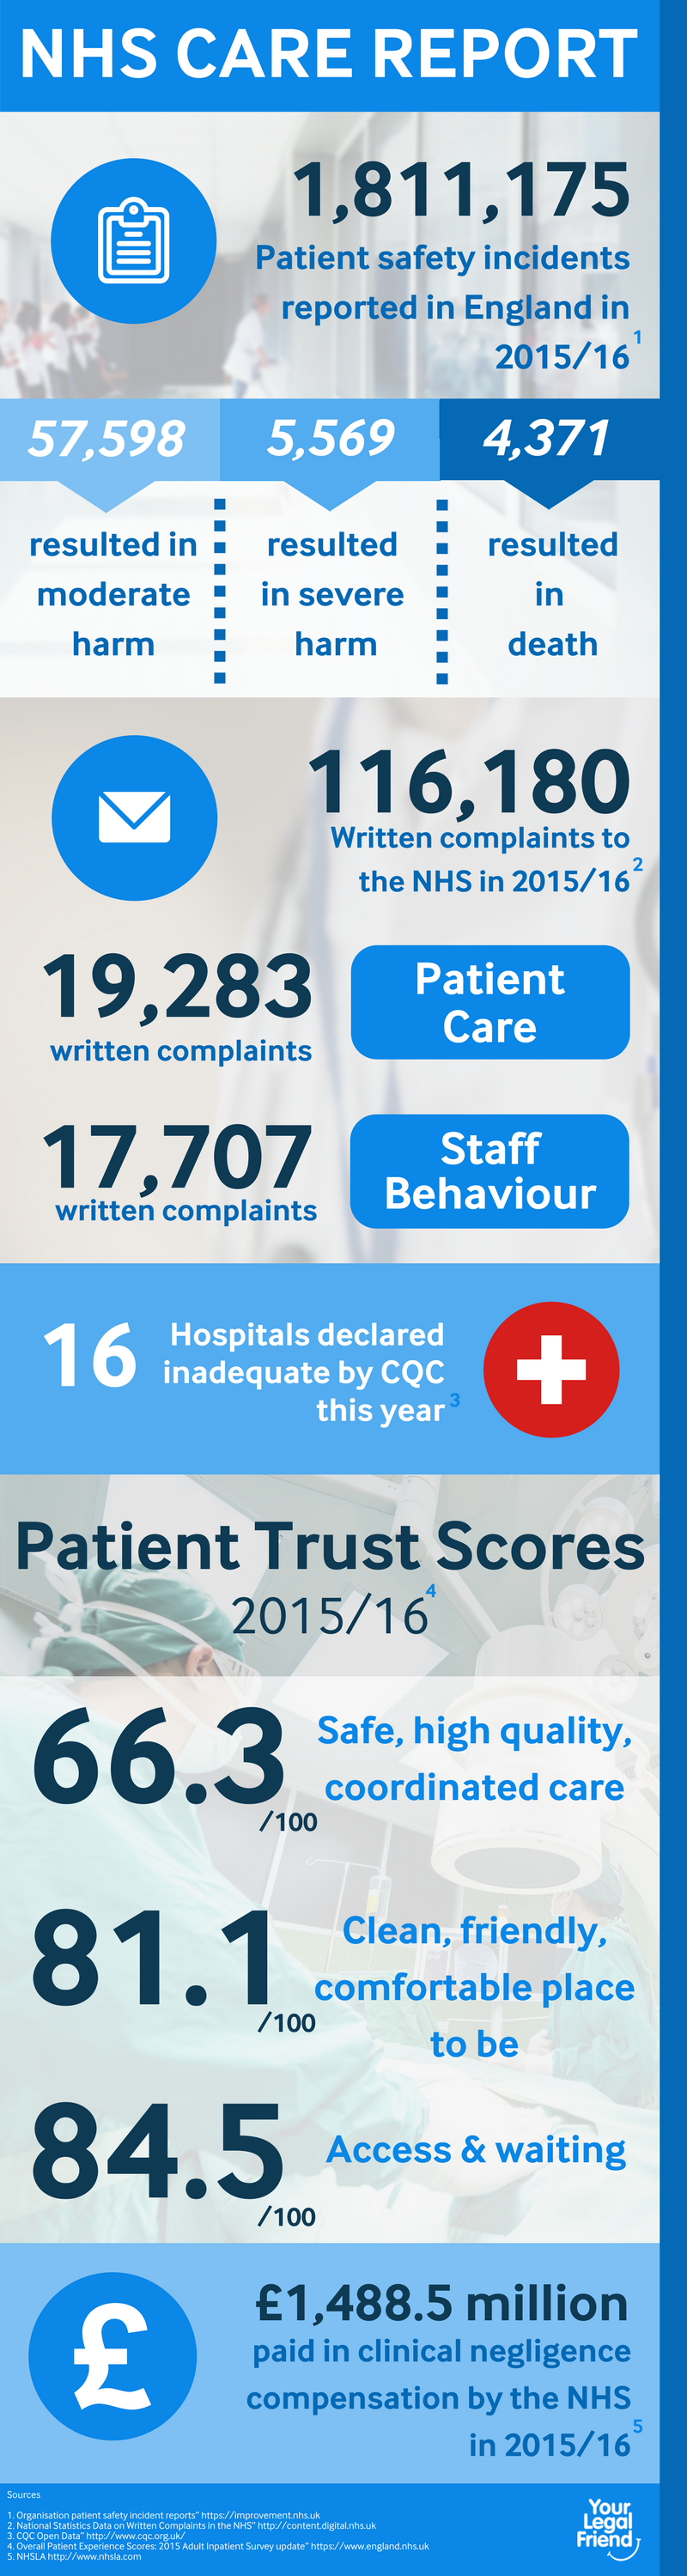 NHS care infographic